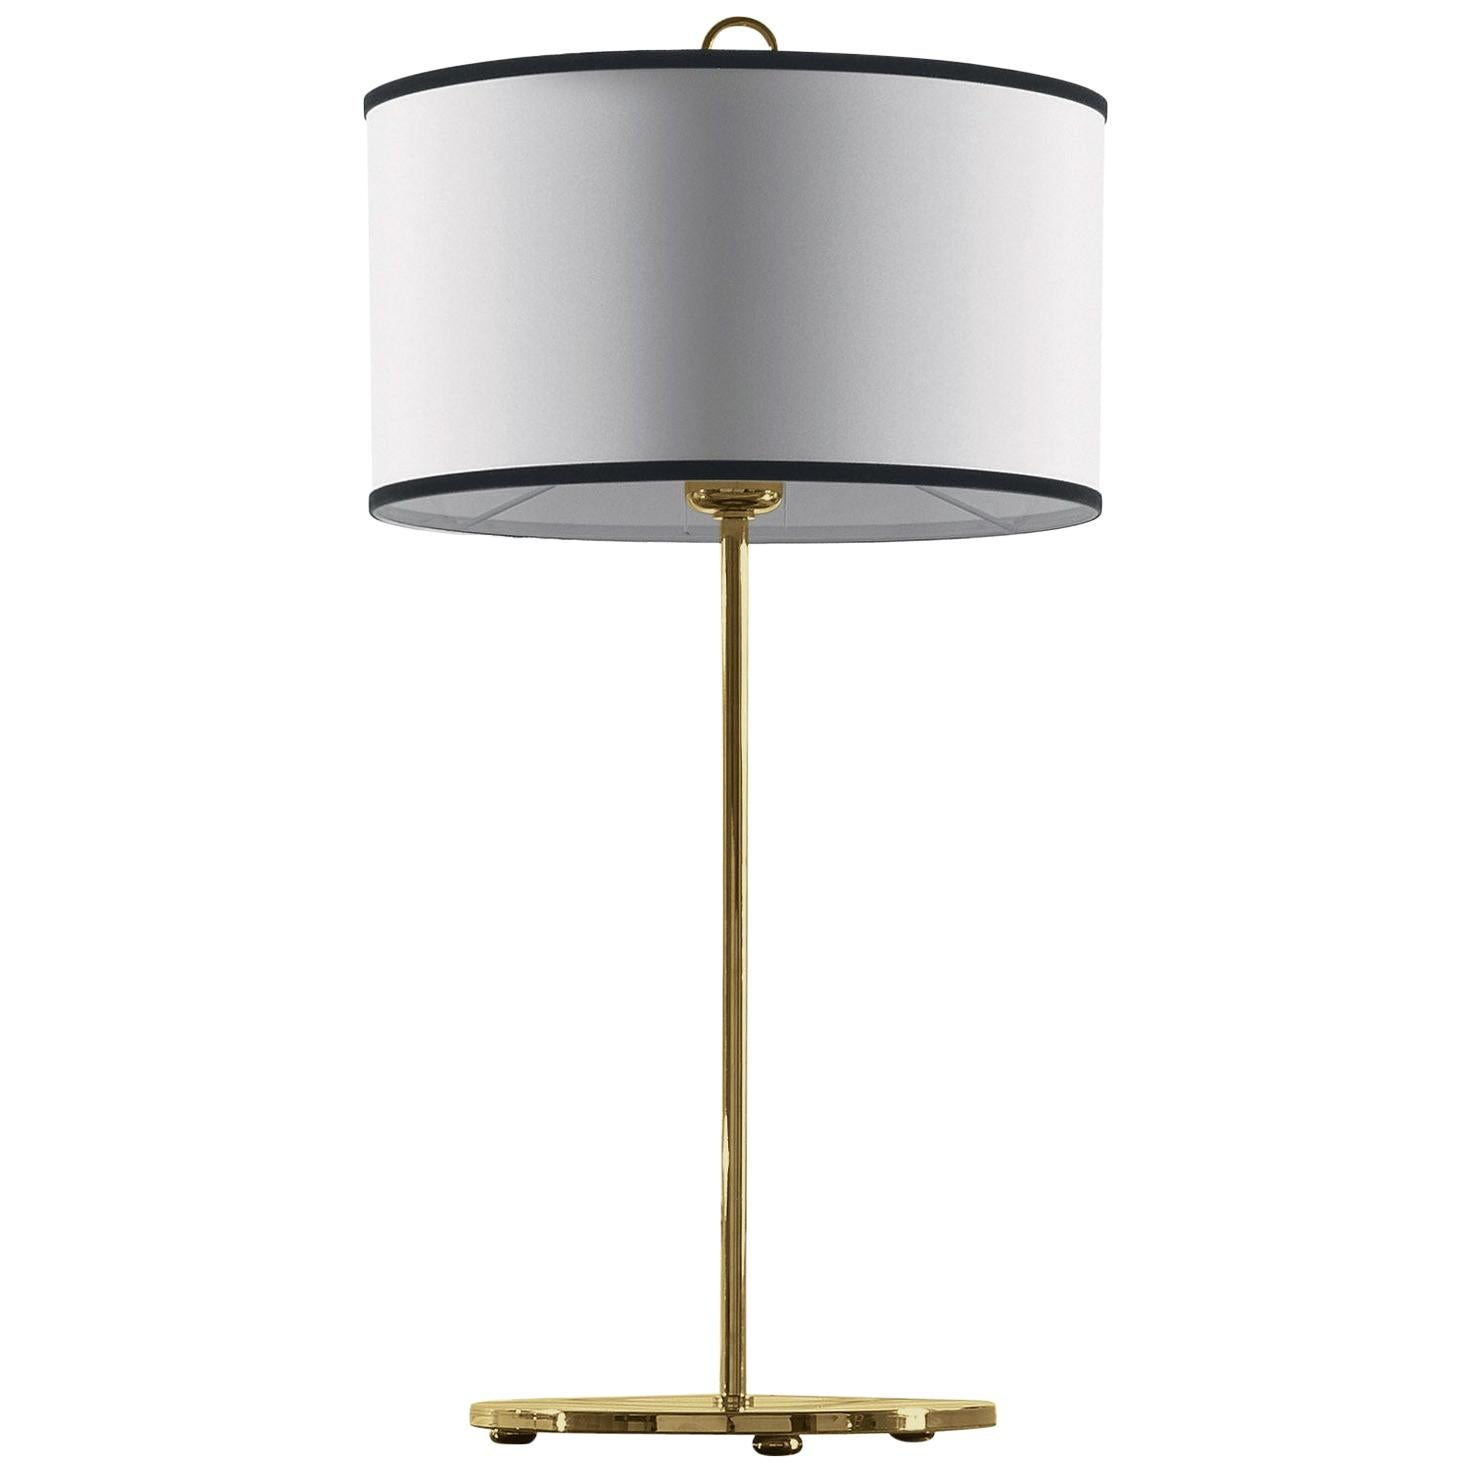 Gianfranco Ferré Home Cindy Table Lamp in Brass and Iron in Gold Finish